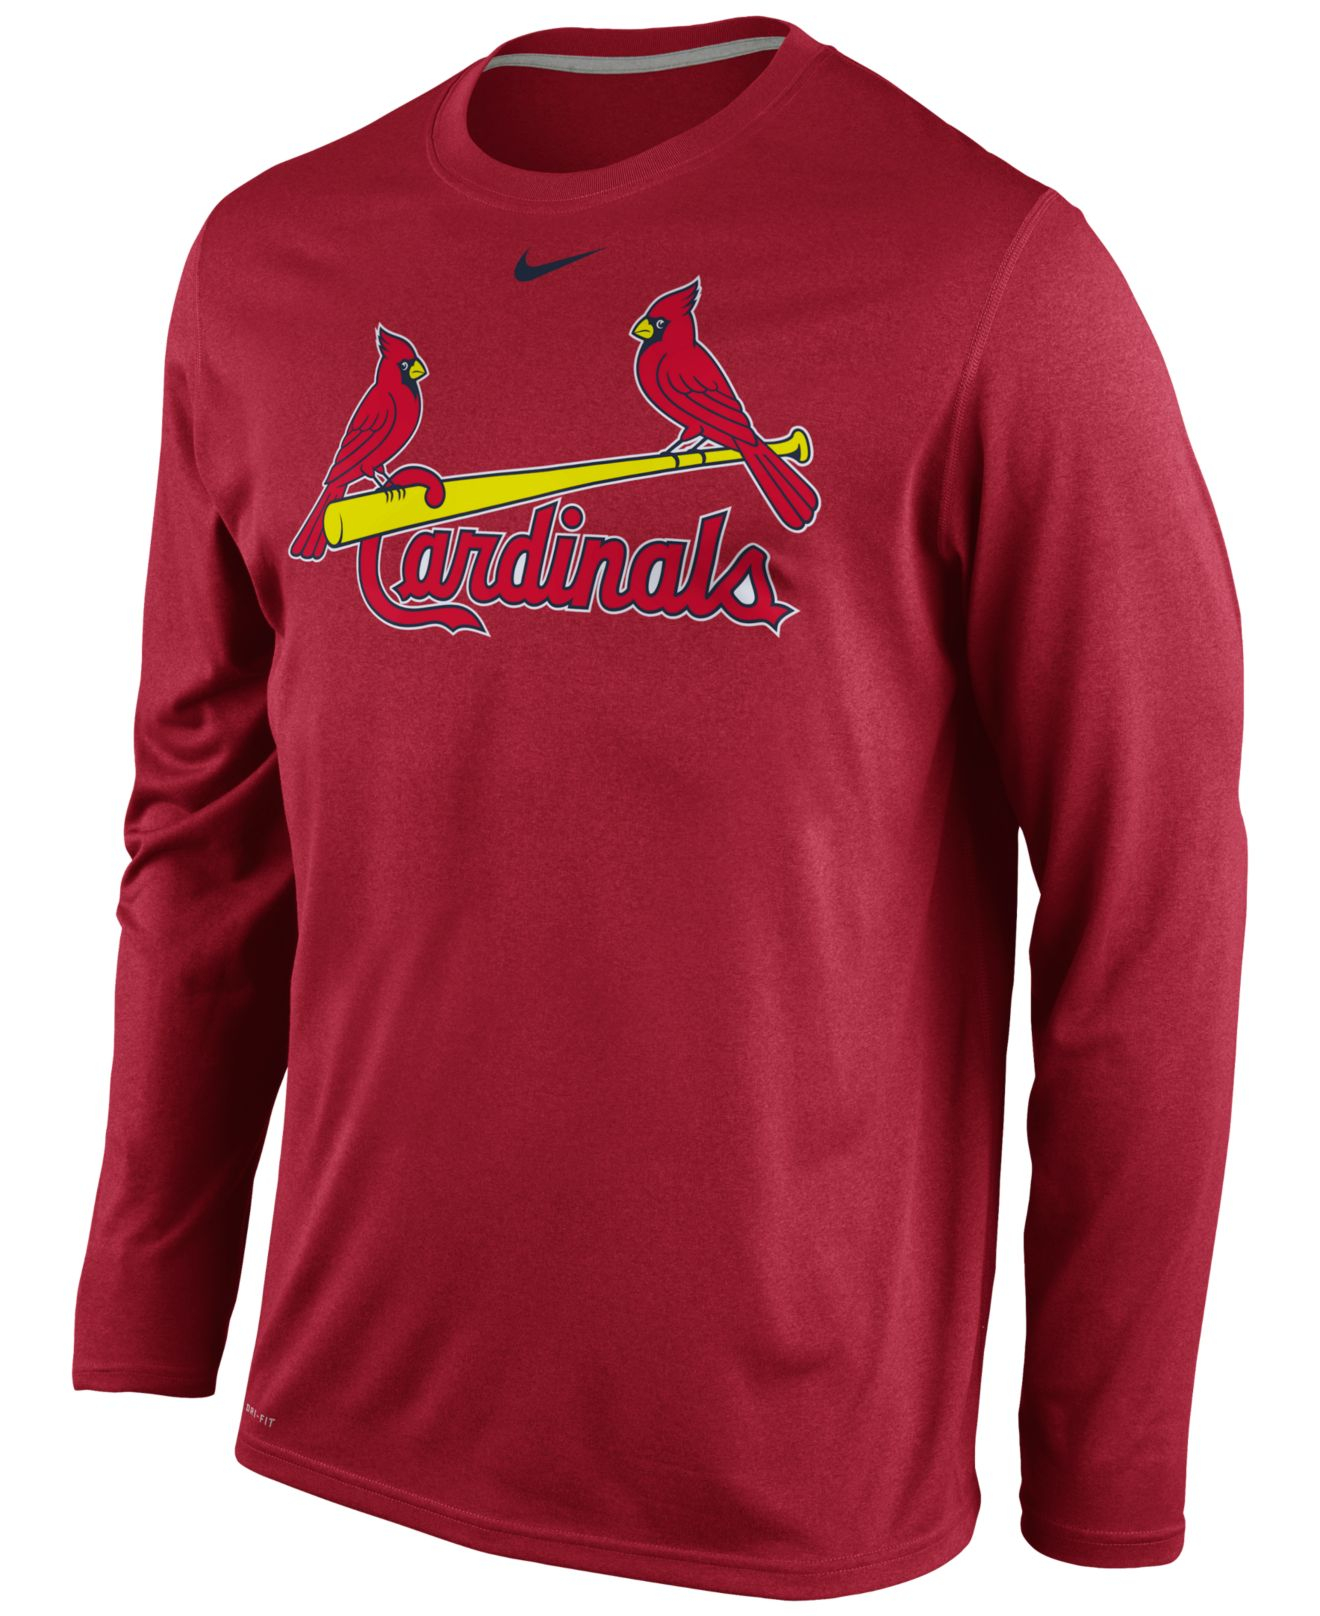 Nike Pullover Red Lyst Nike Men 39;s Long Sleeve St Louis Cardinals Legend T